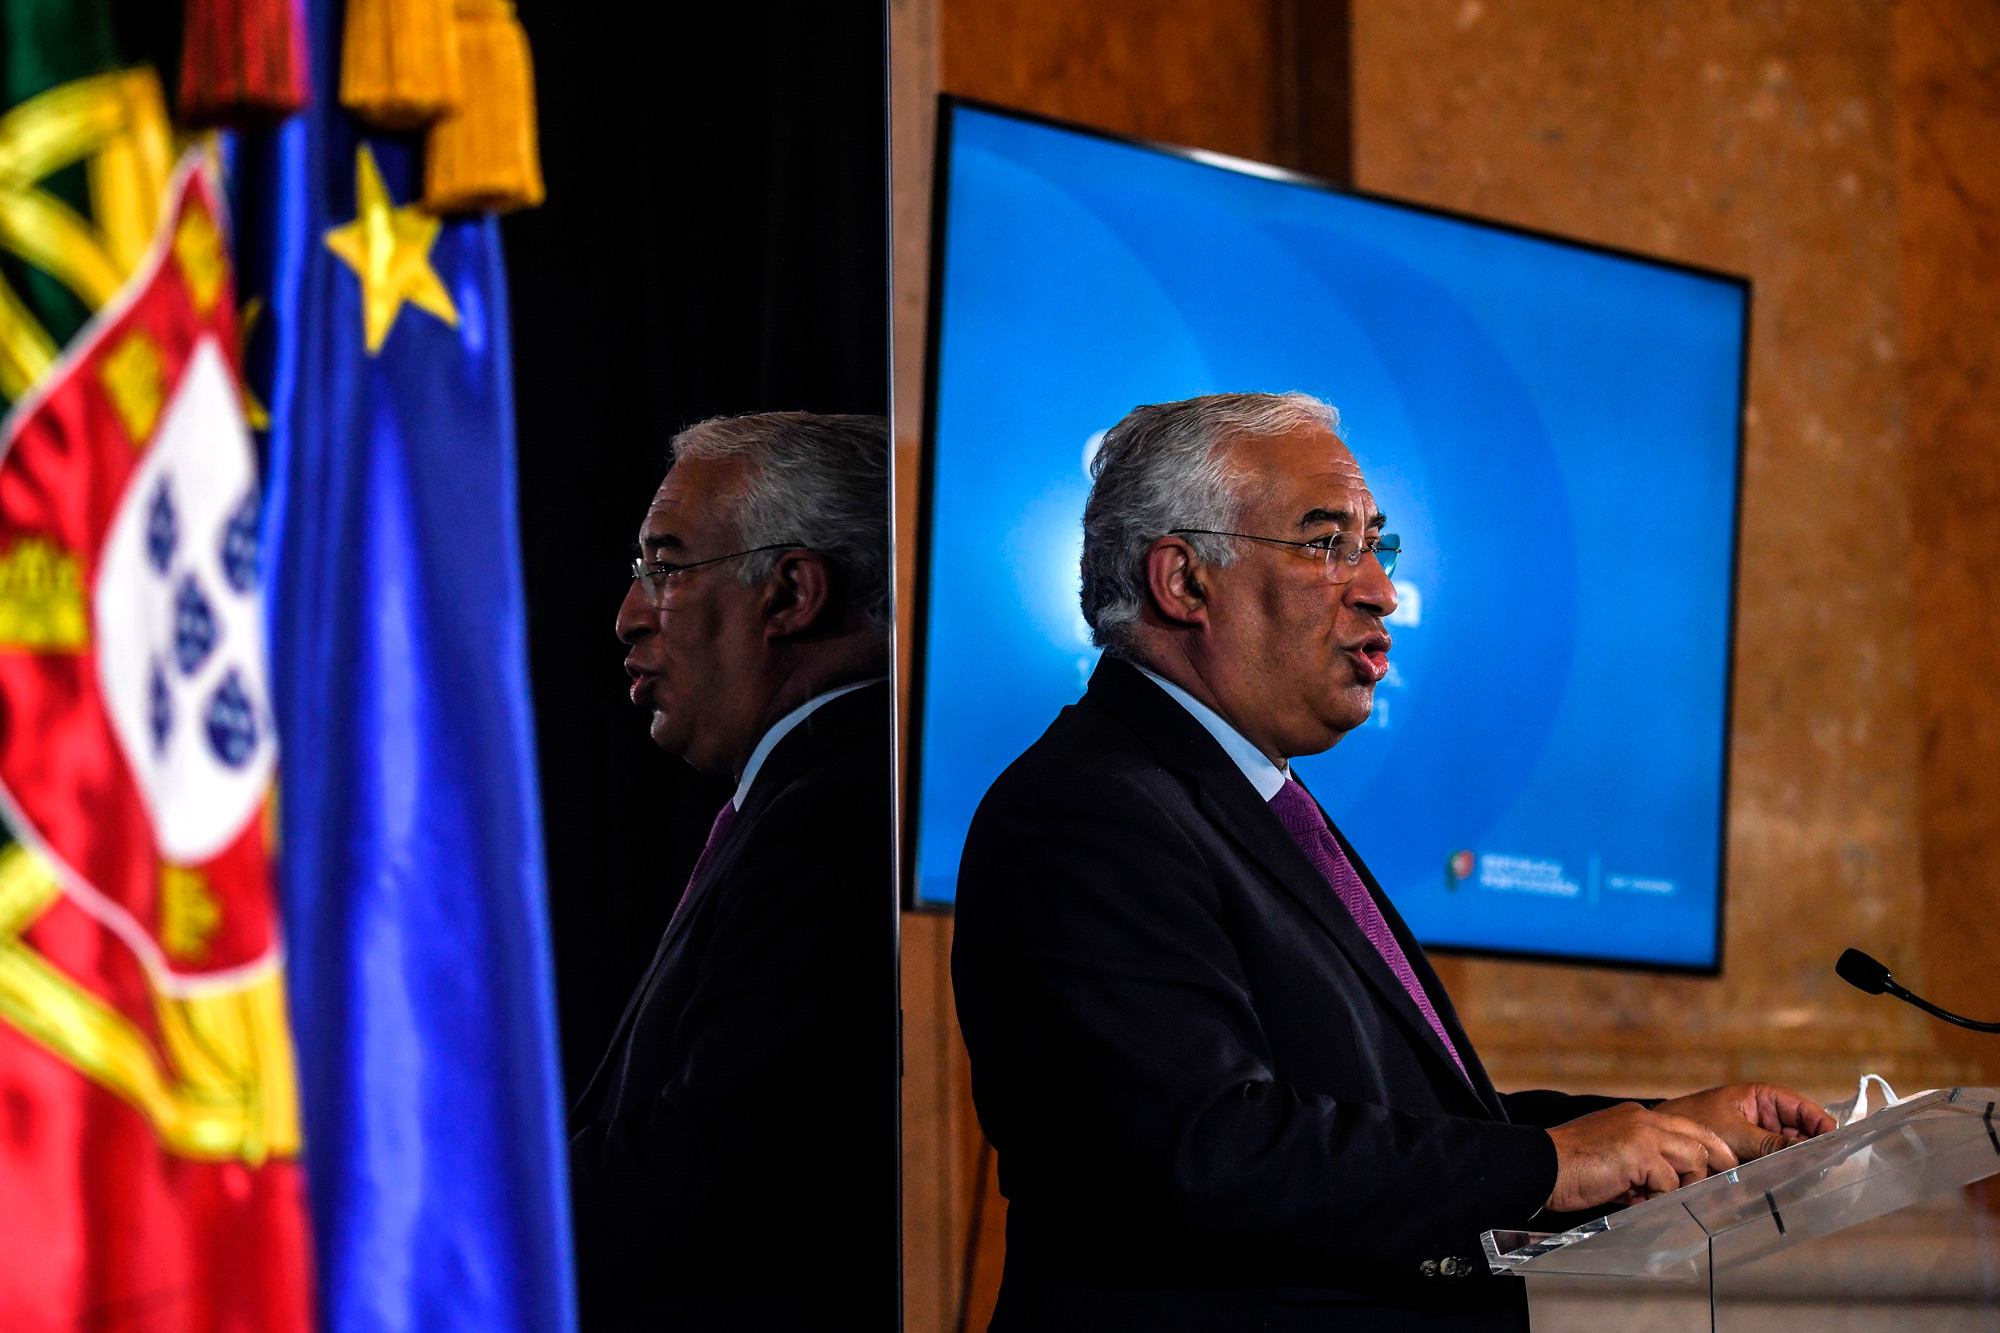 Portugal Prime Minister Antonio Costa holds a press conference at Palacio da Ajuda in Lisbon on January 13.